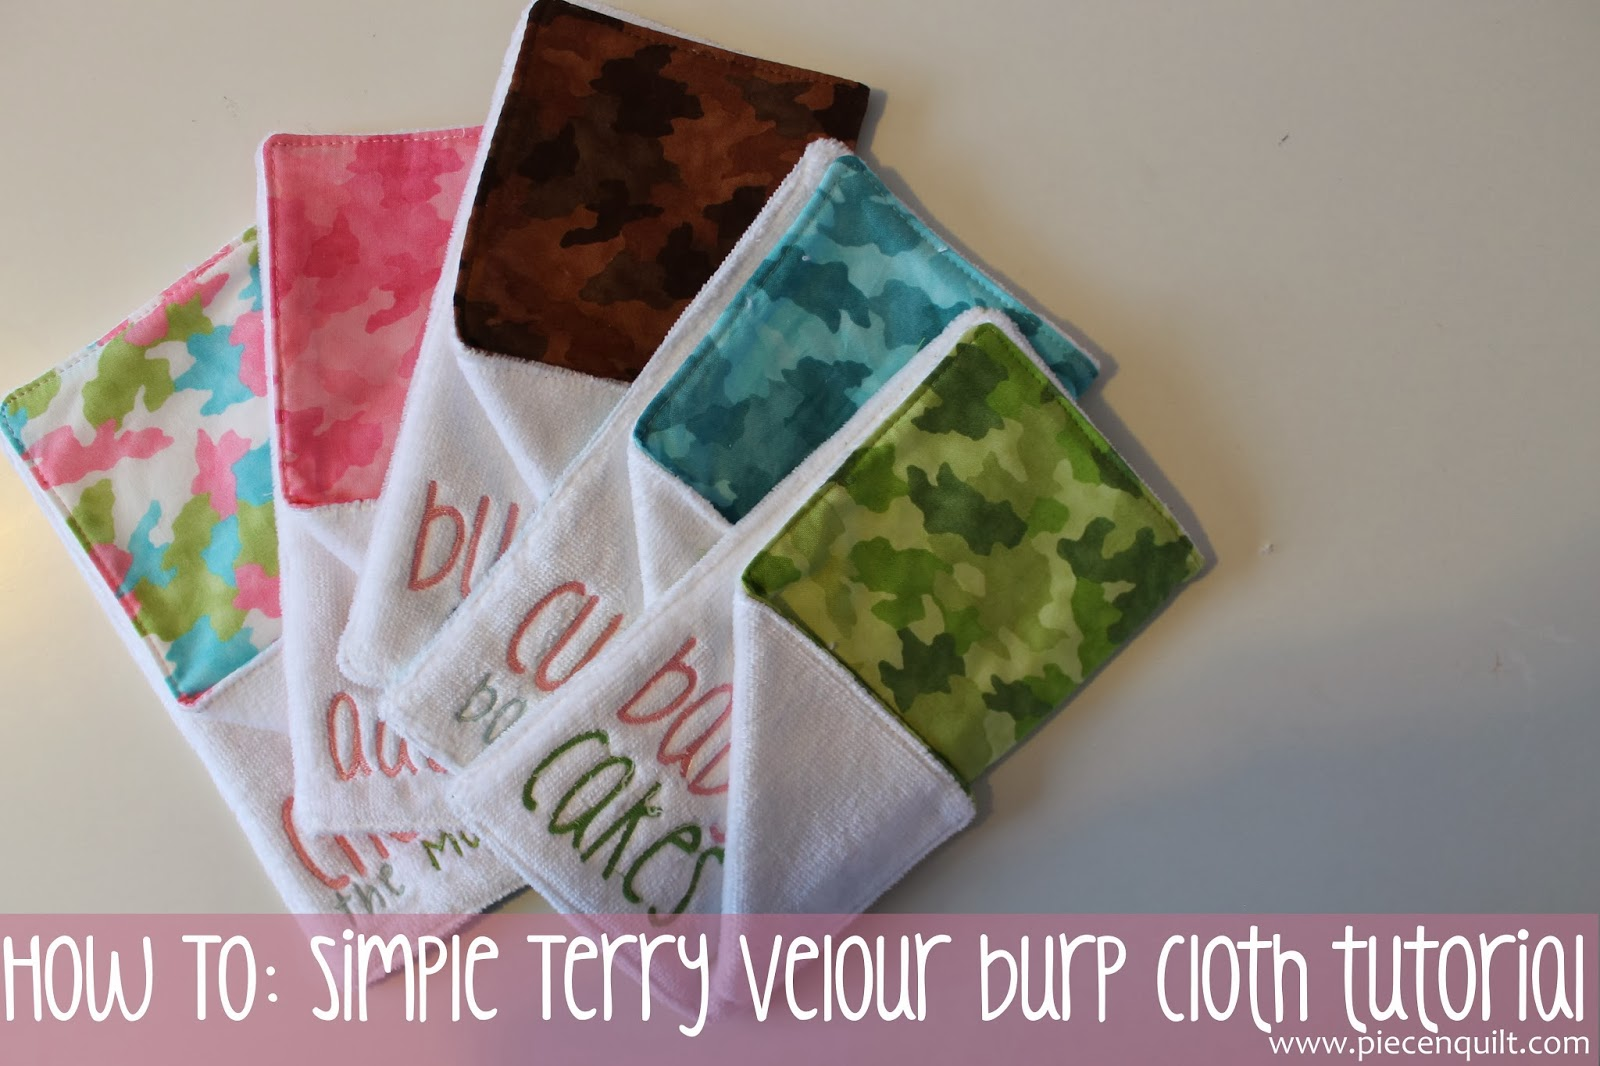 Piece n quilt how to simple terry velour burp cloth tutorial how to simple terry velour burp cloth tutorial baditri Image collections